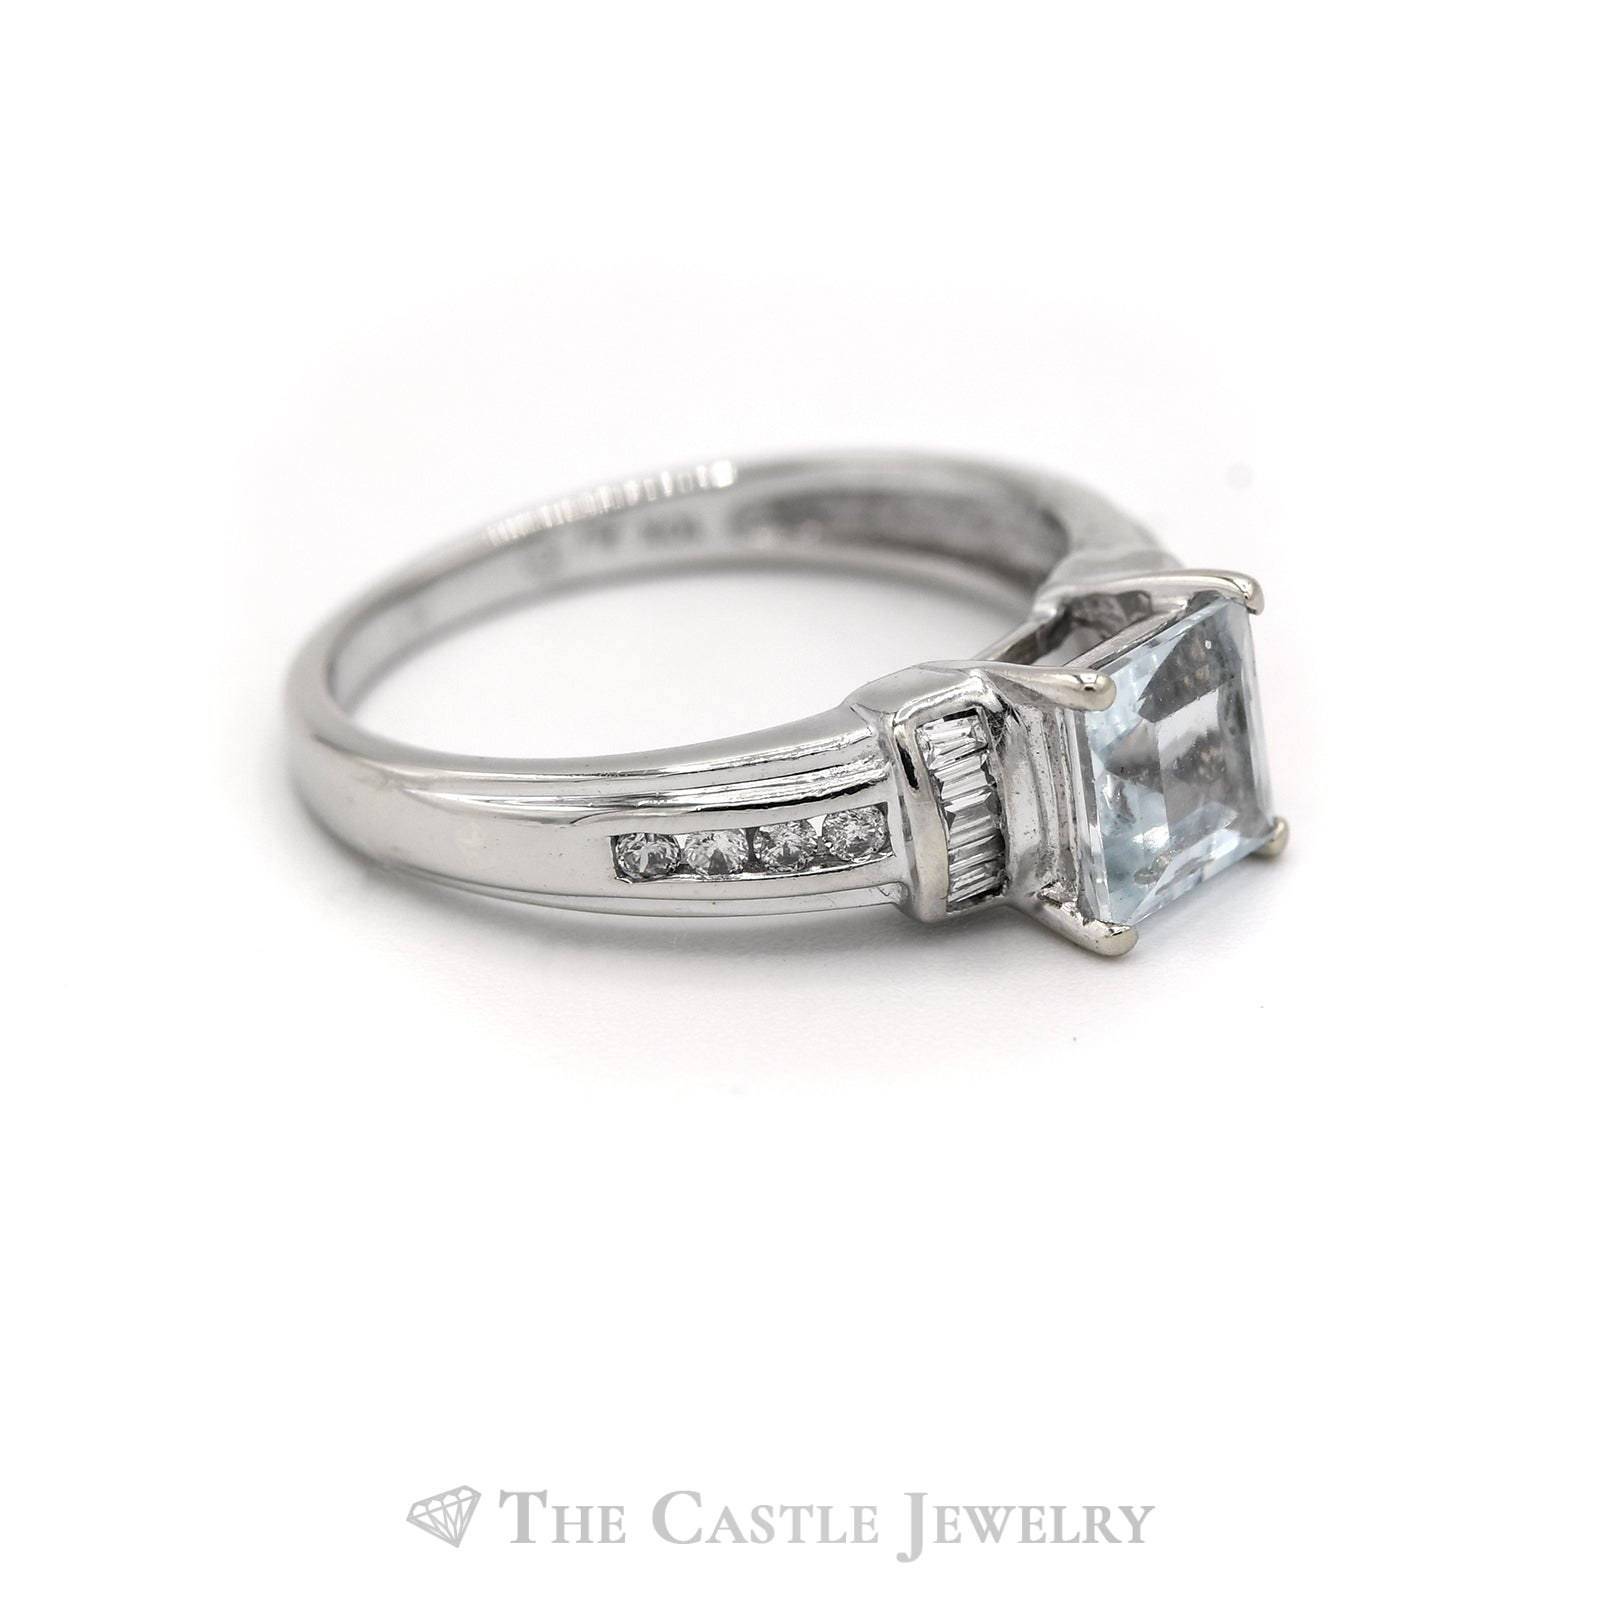 Square Shaped Aquamarine Ring with Baguette & Round Diamond Accents in 10k White Gold-2